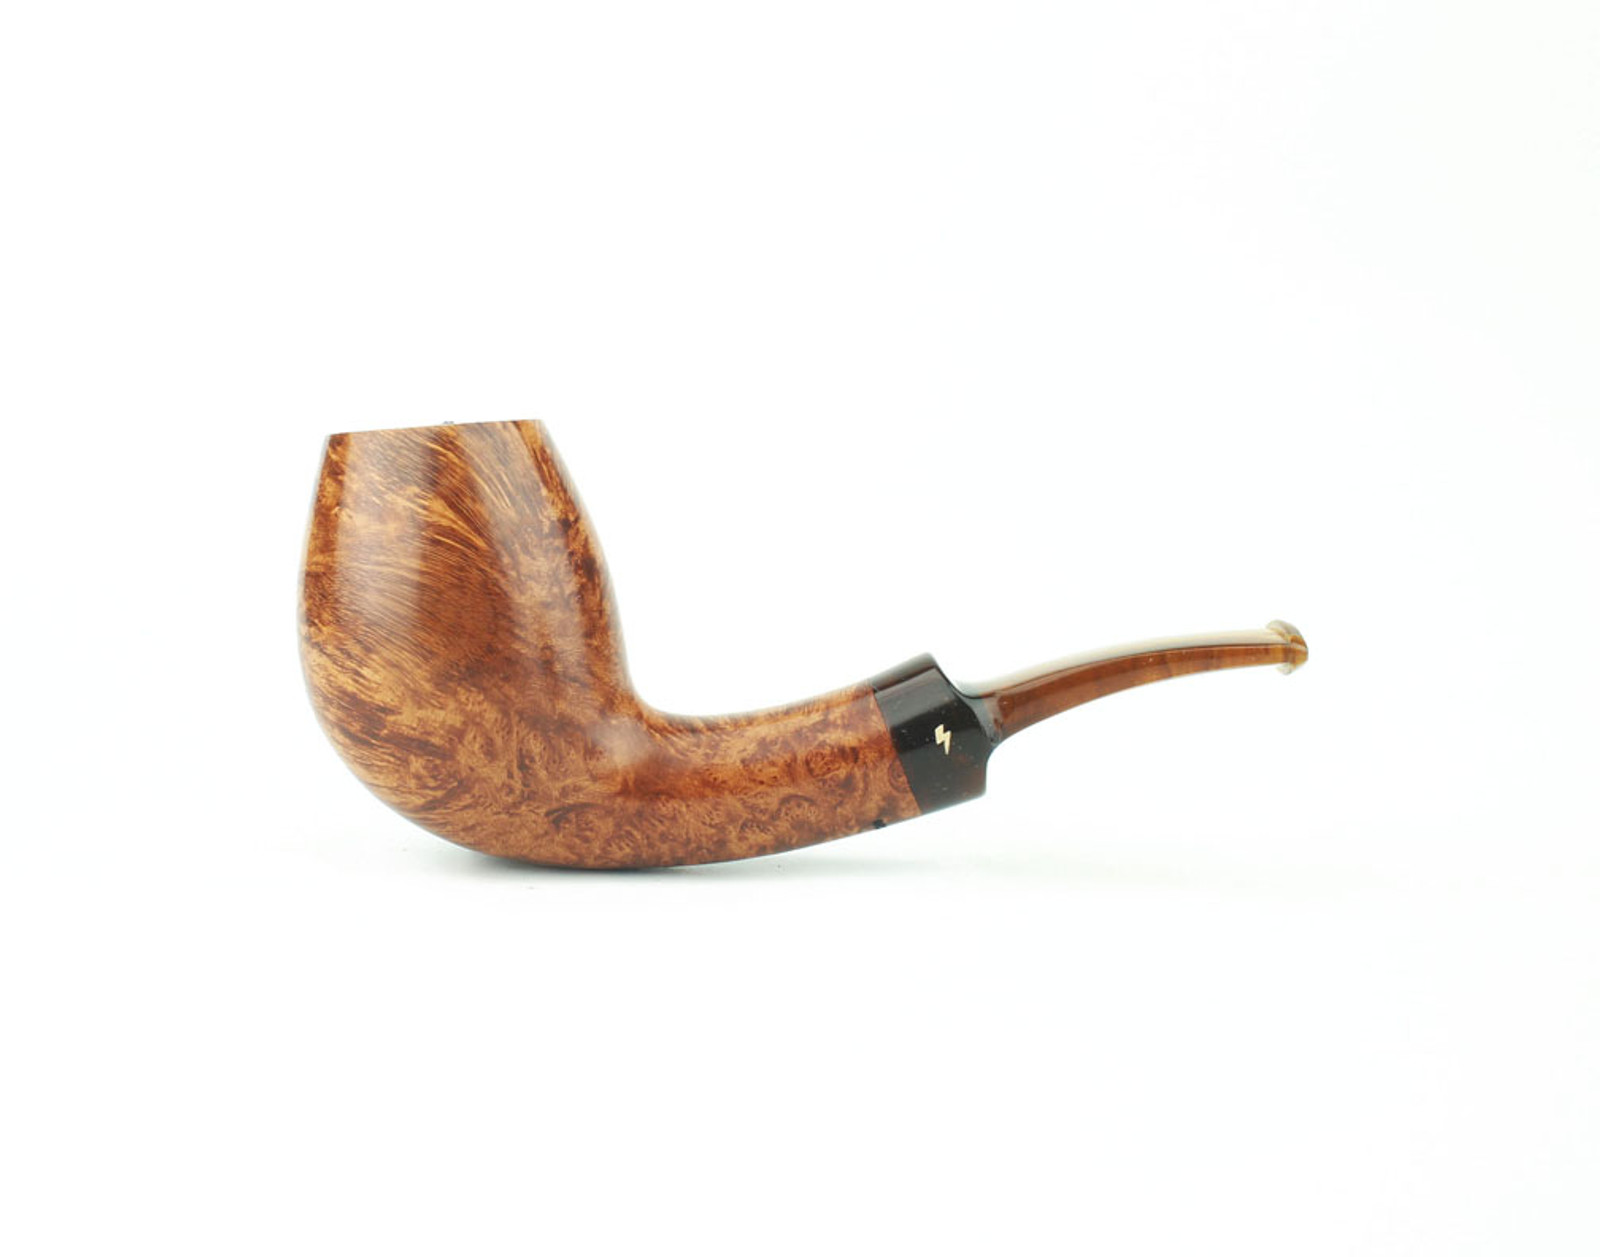 MS05LS T - Moonshine Bent Egg - Light Contrast Smooth w/ Tortoise Stem